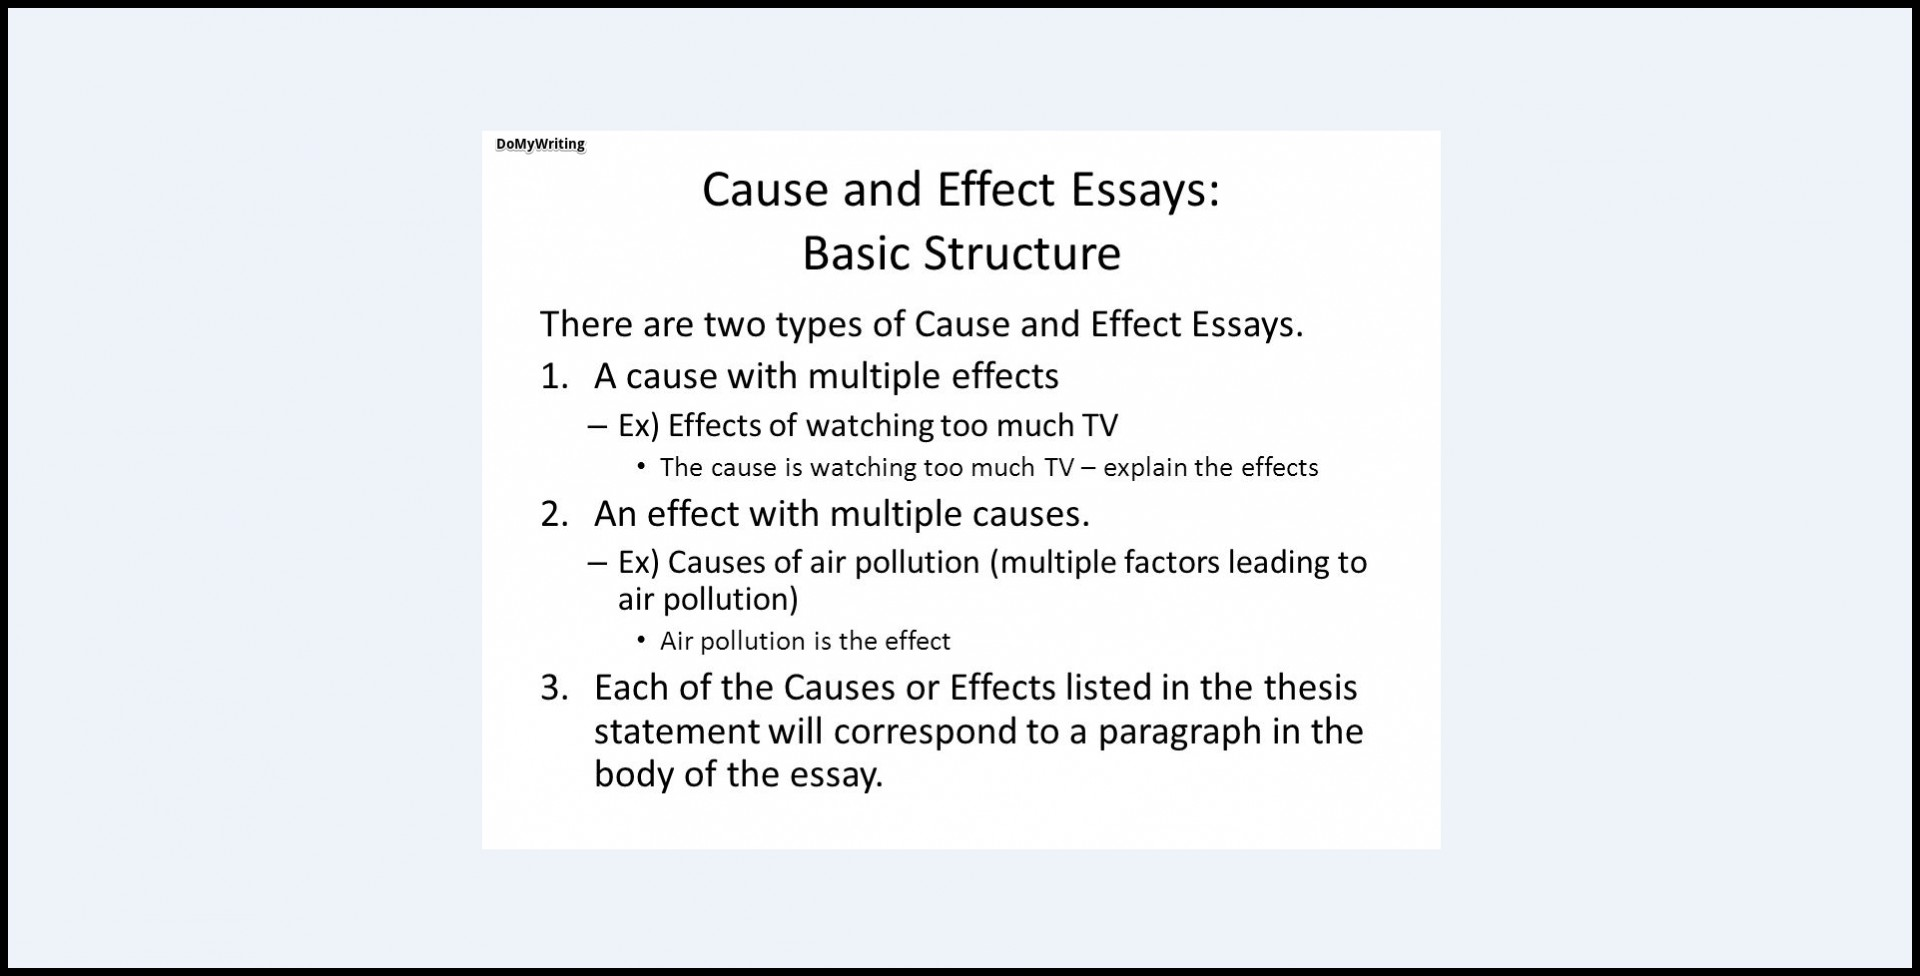 013 Cause And Effect Essay Topics Structure Dreaded Samples Pdf Template Free 1920